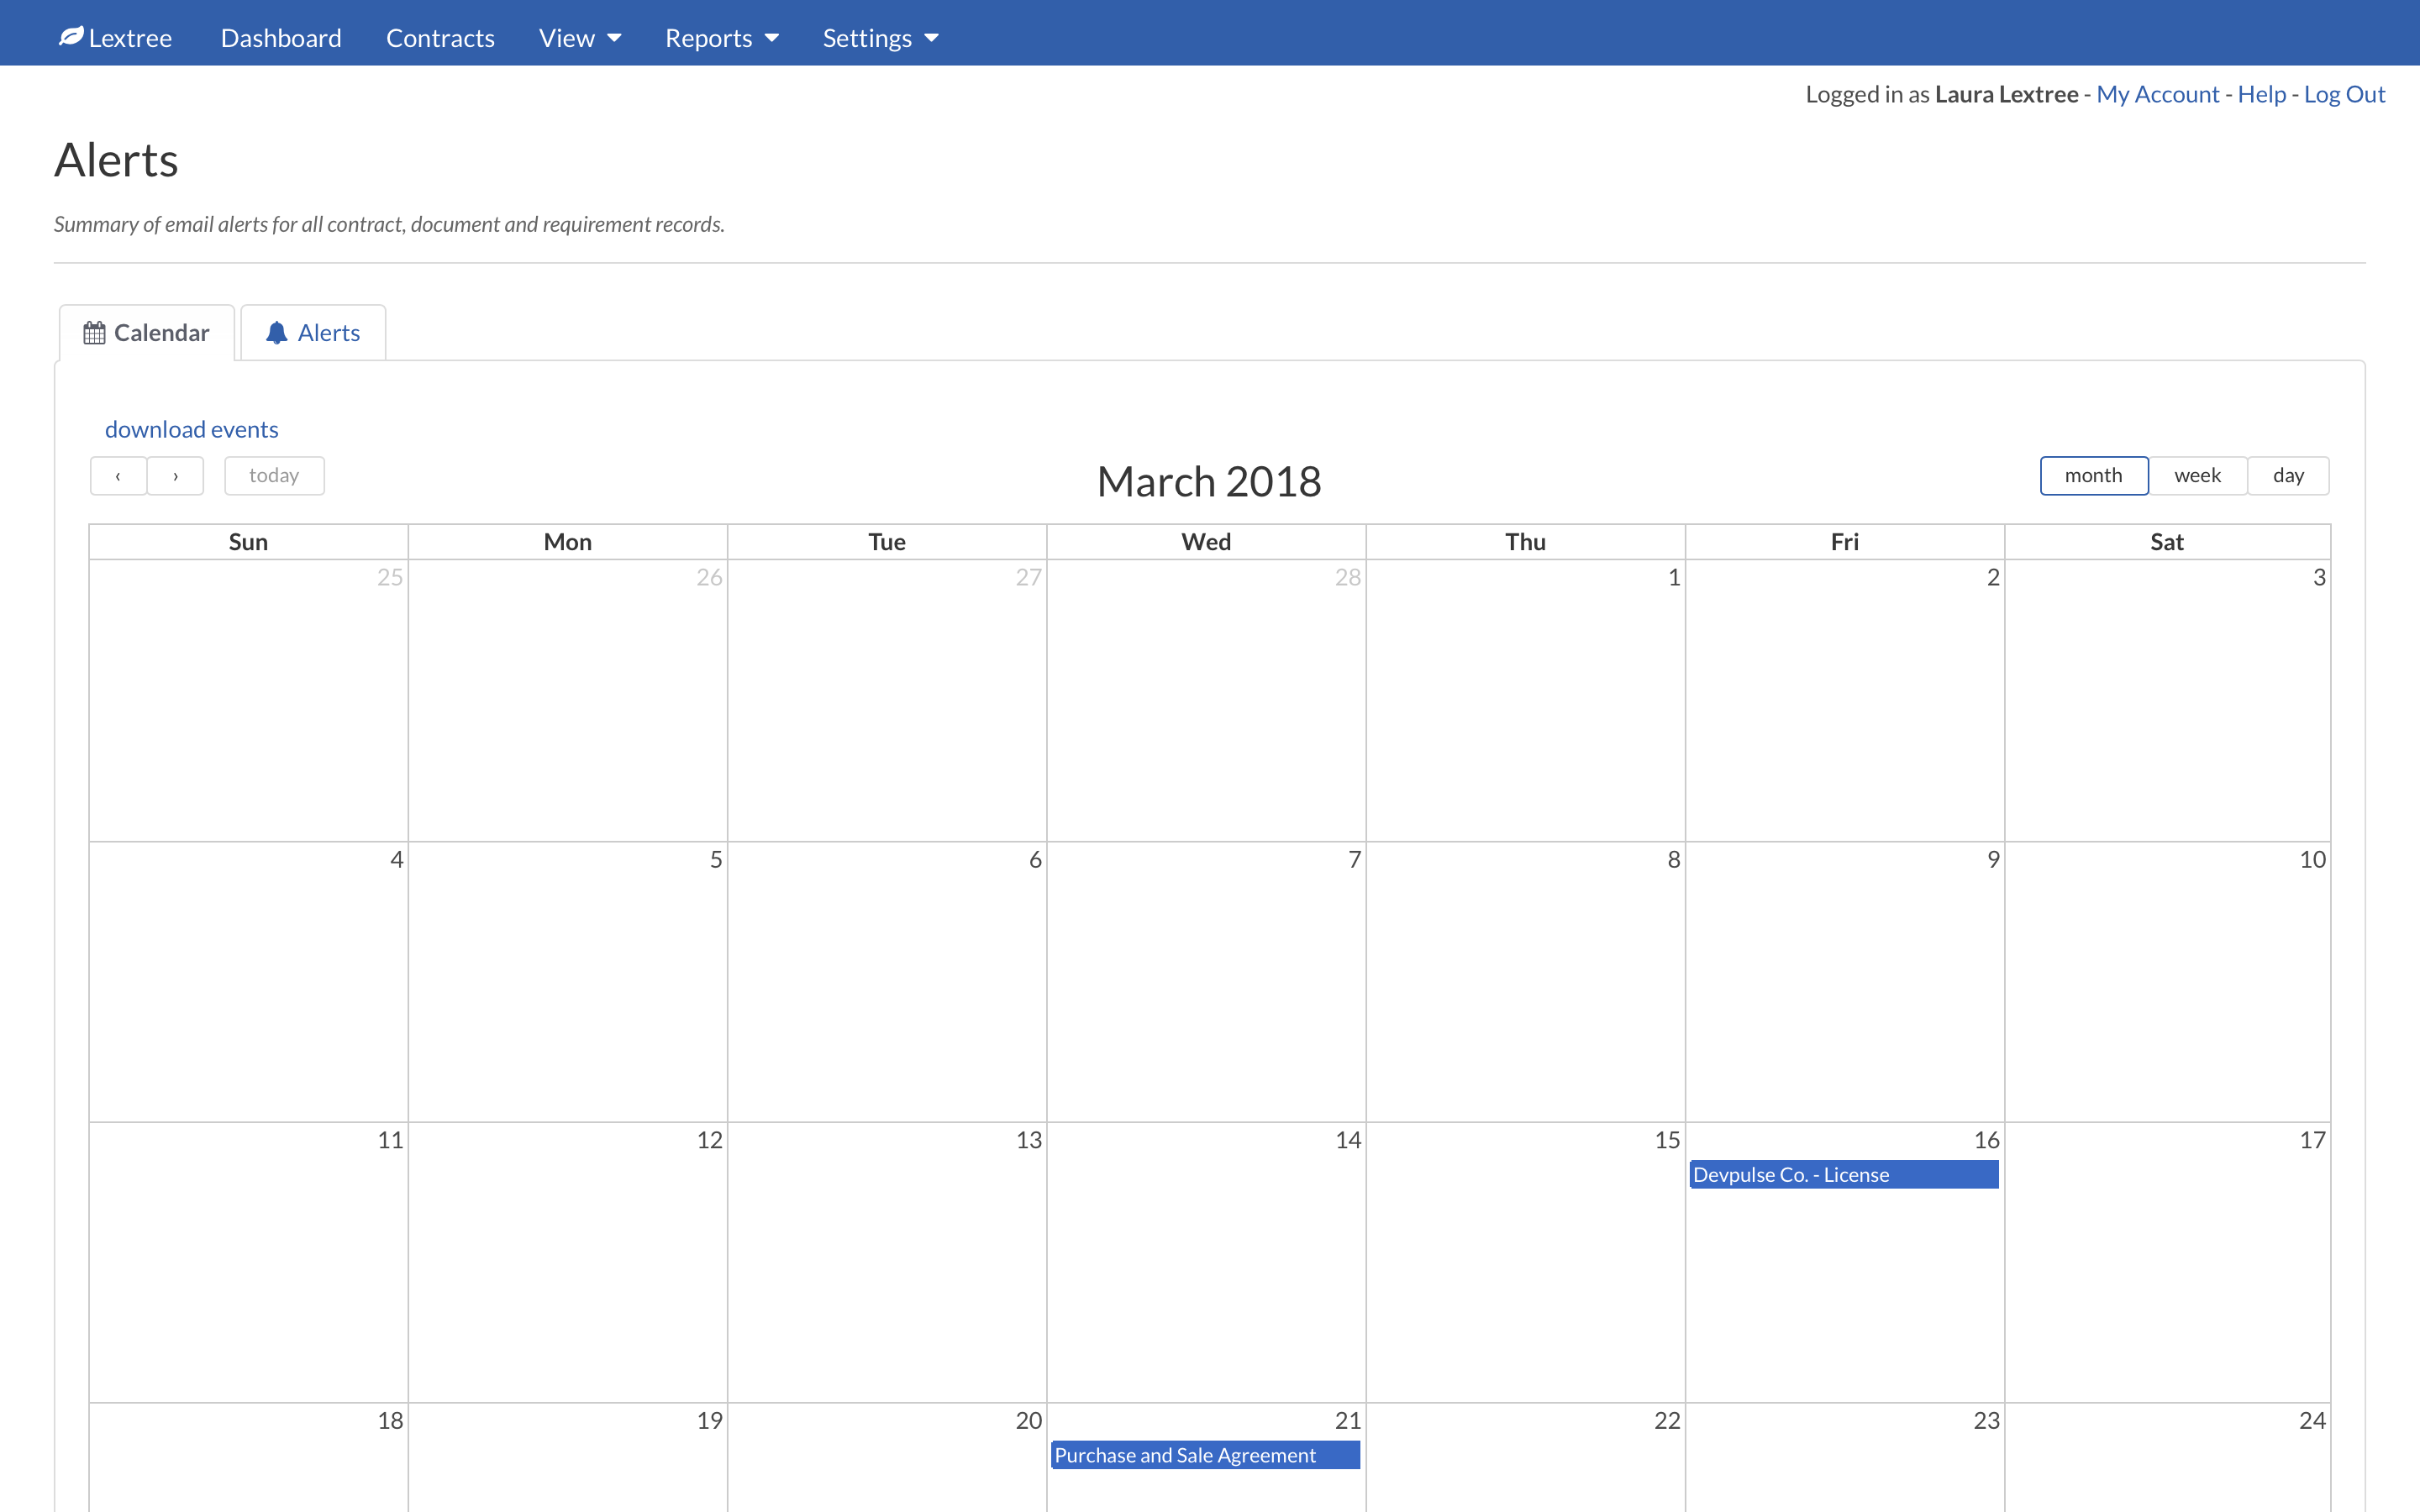 View Contract Alerts Calendar